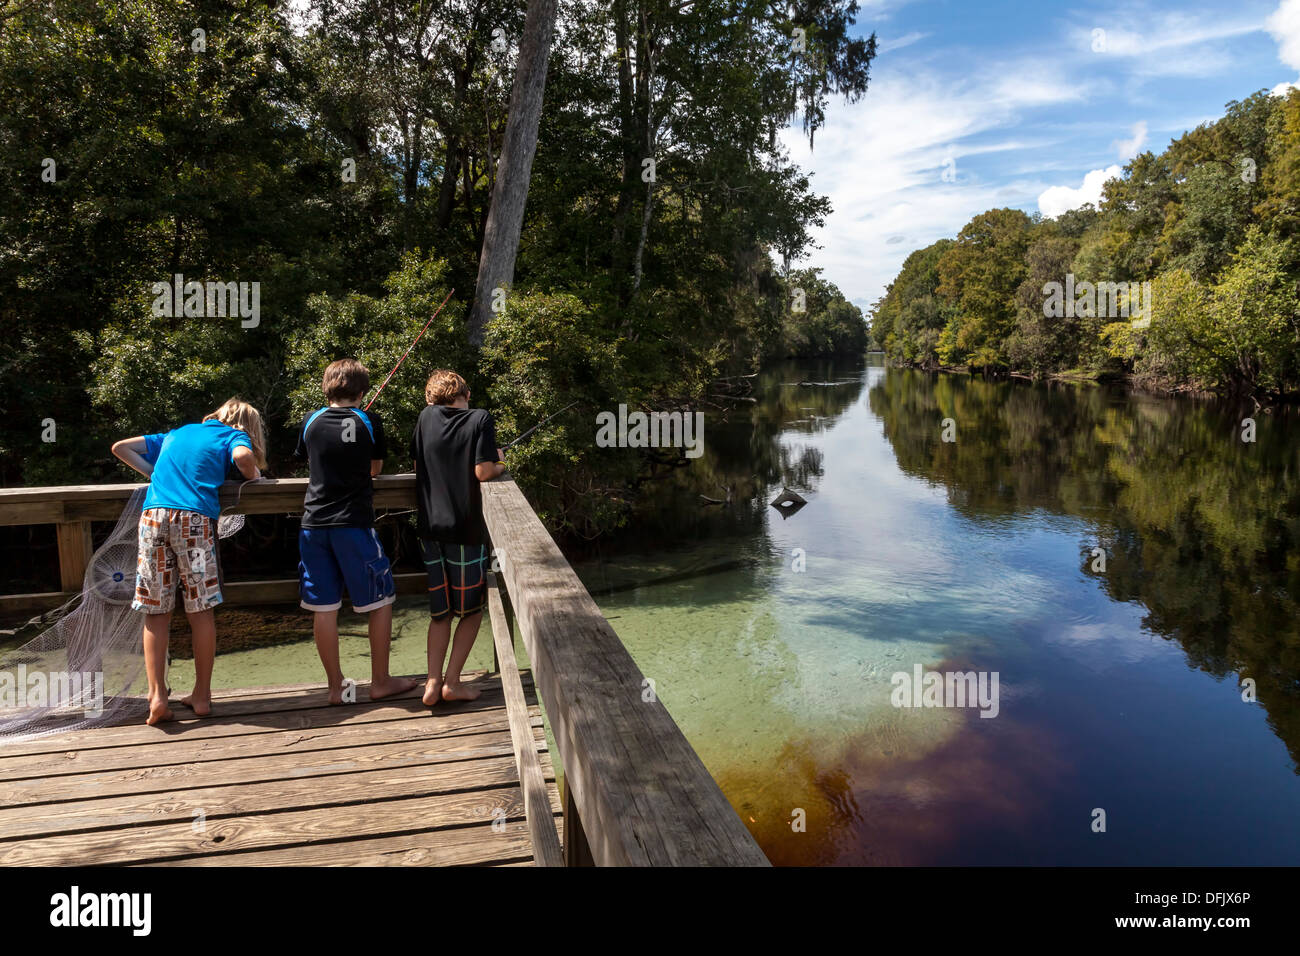 three-young-boys-fishing-from-dock-where